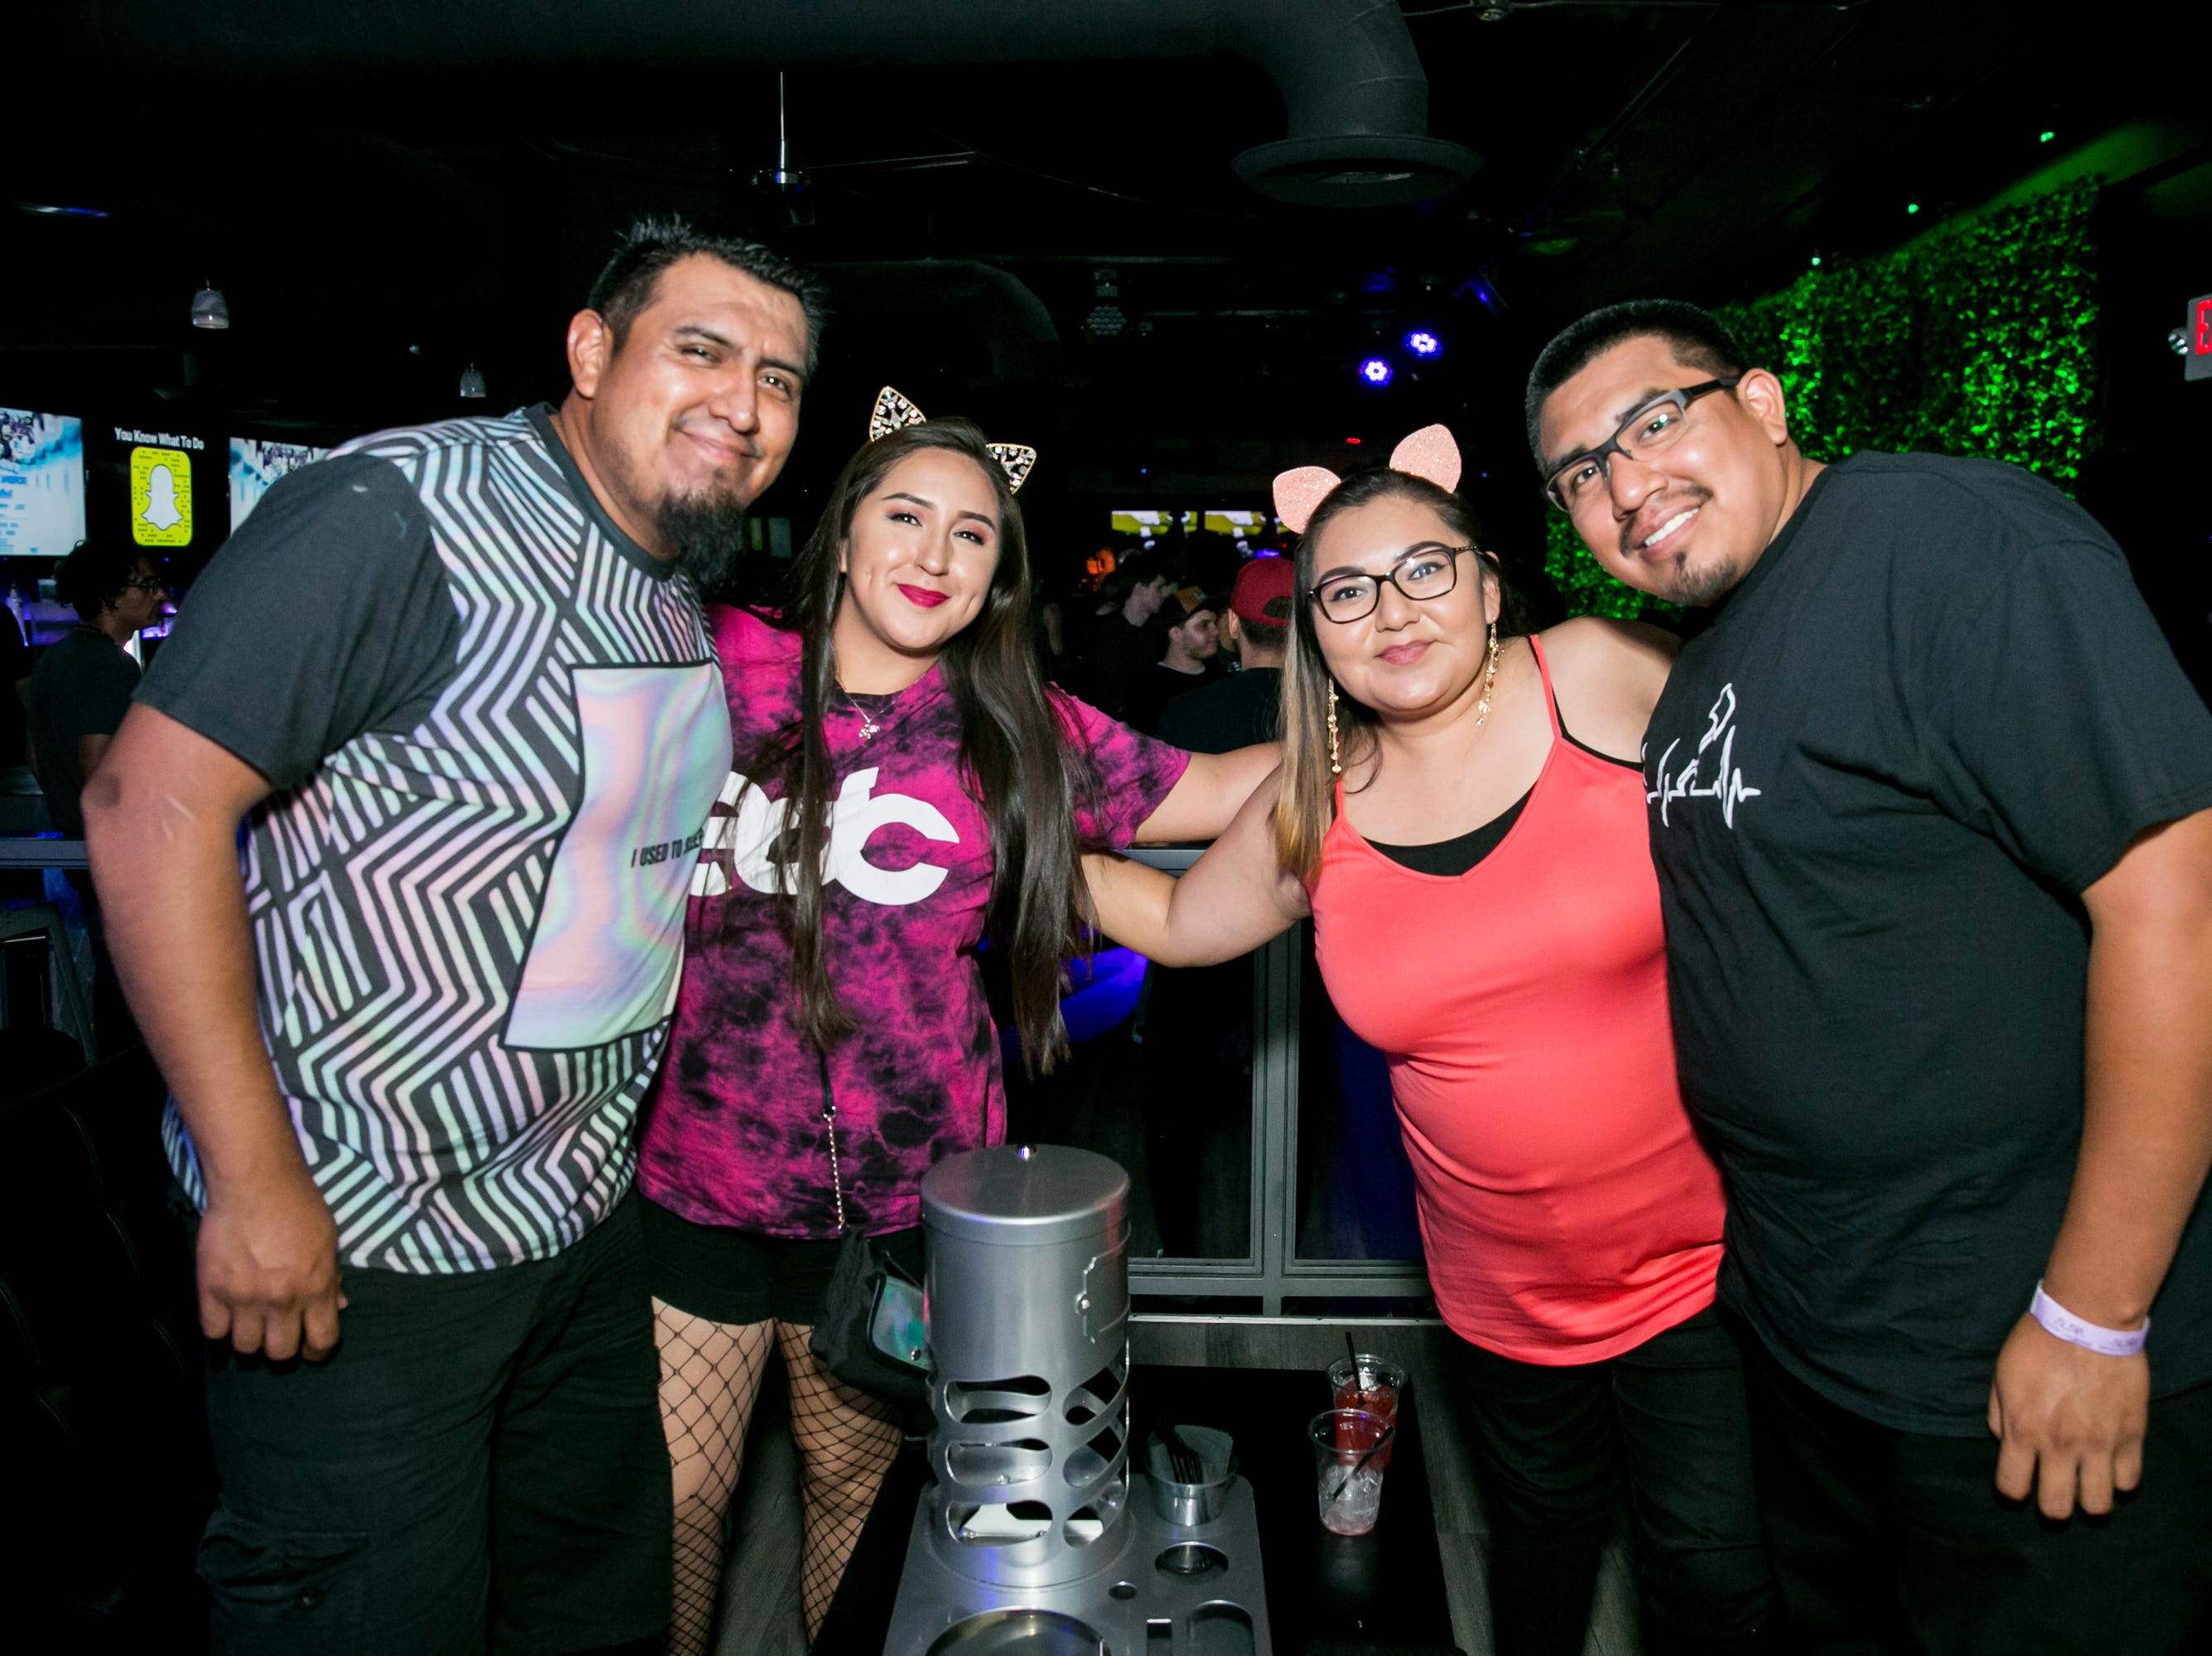 Fun times were had during Alice's Wonderland III: The Red Queen's Revenge at Aura Nightclub on Friday, September 7, 2018.